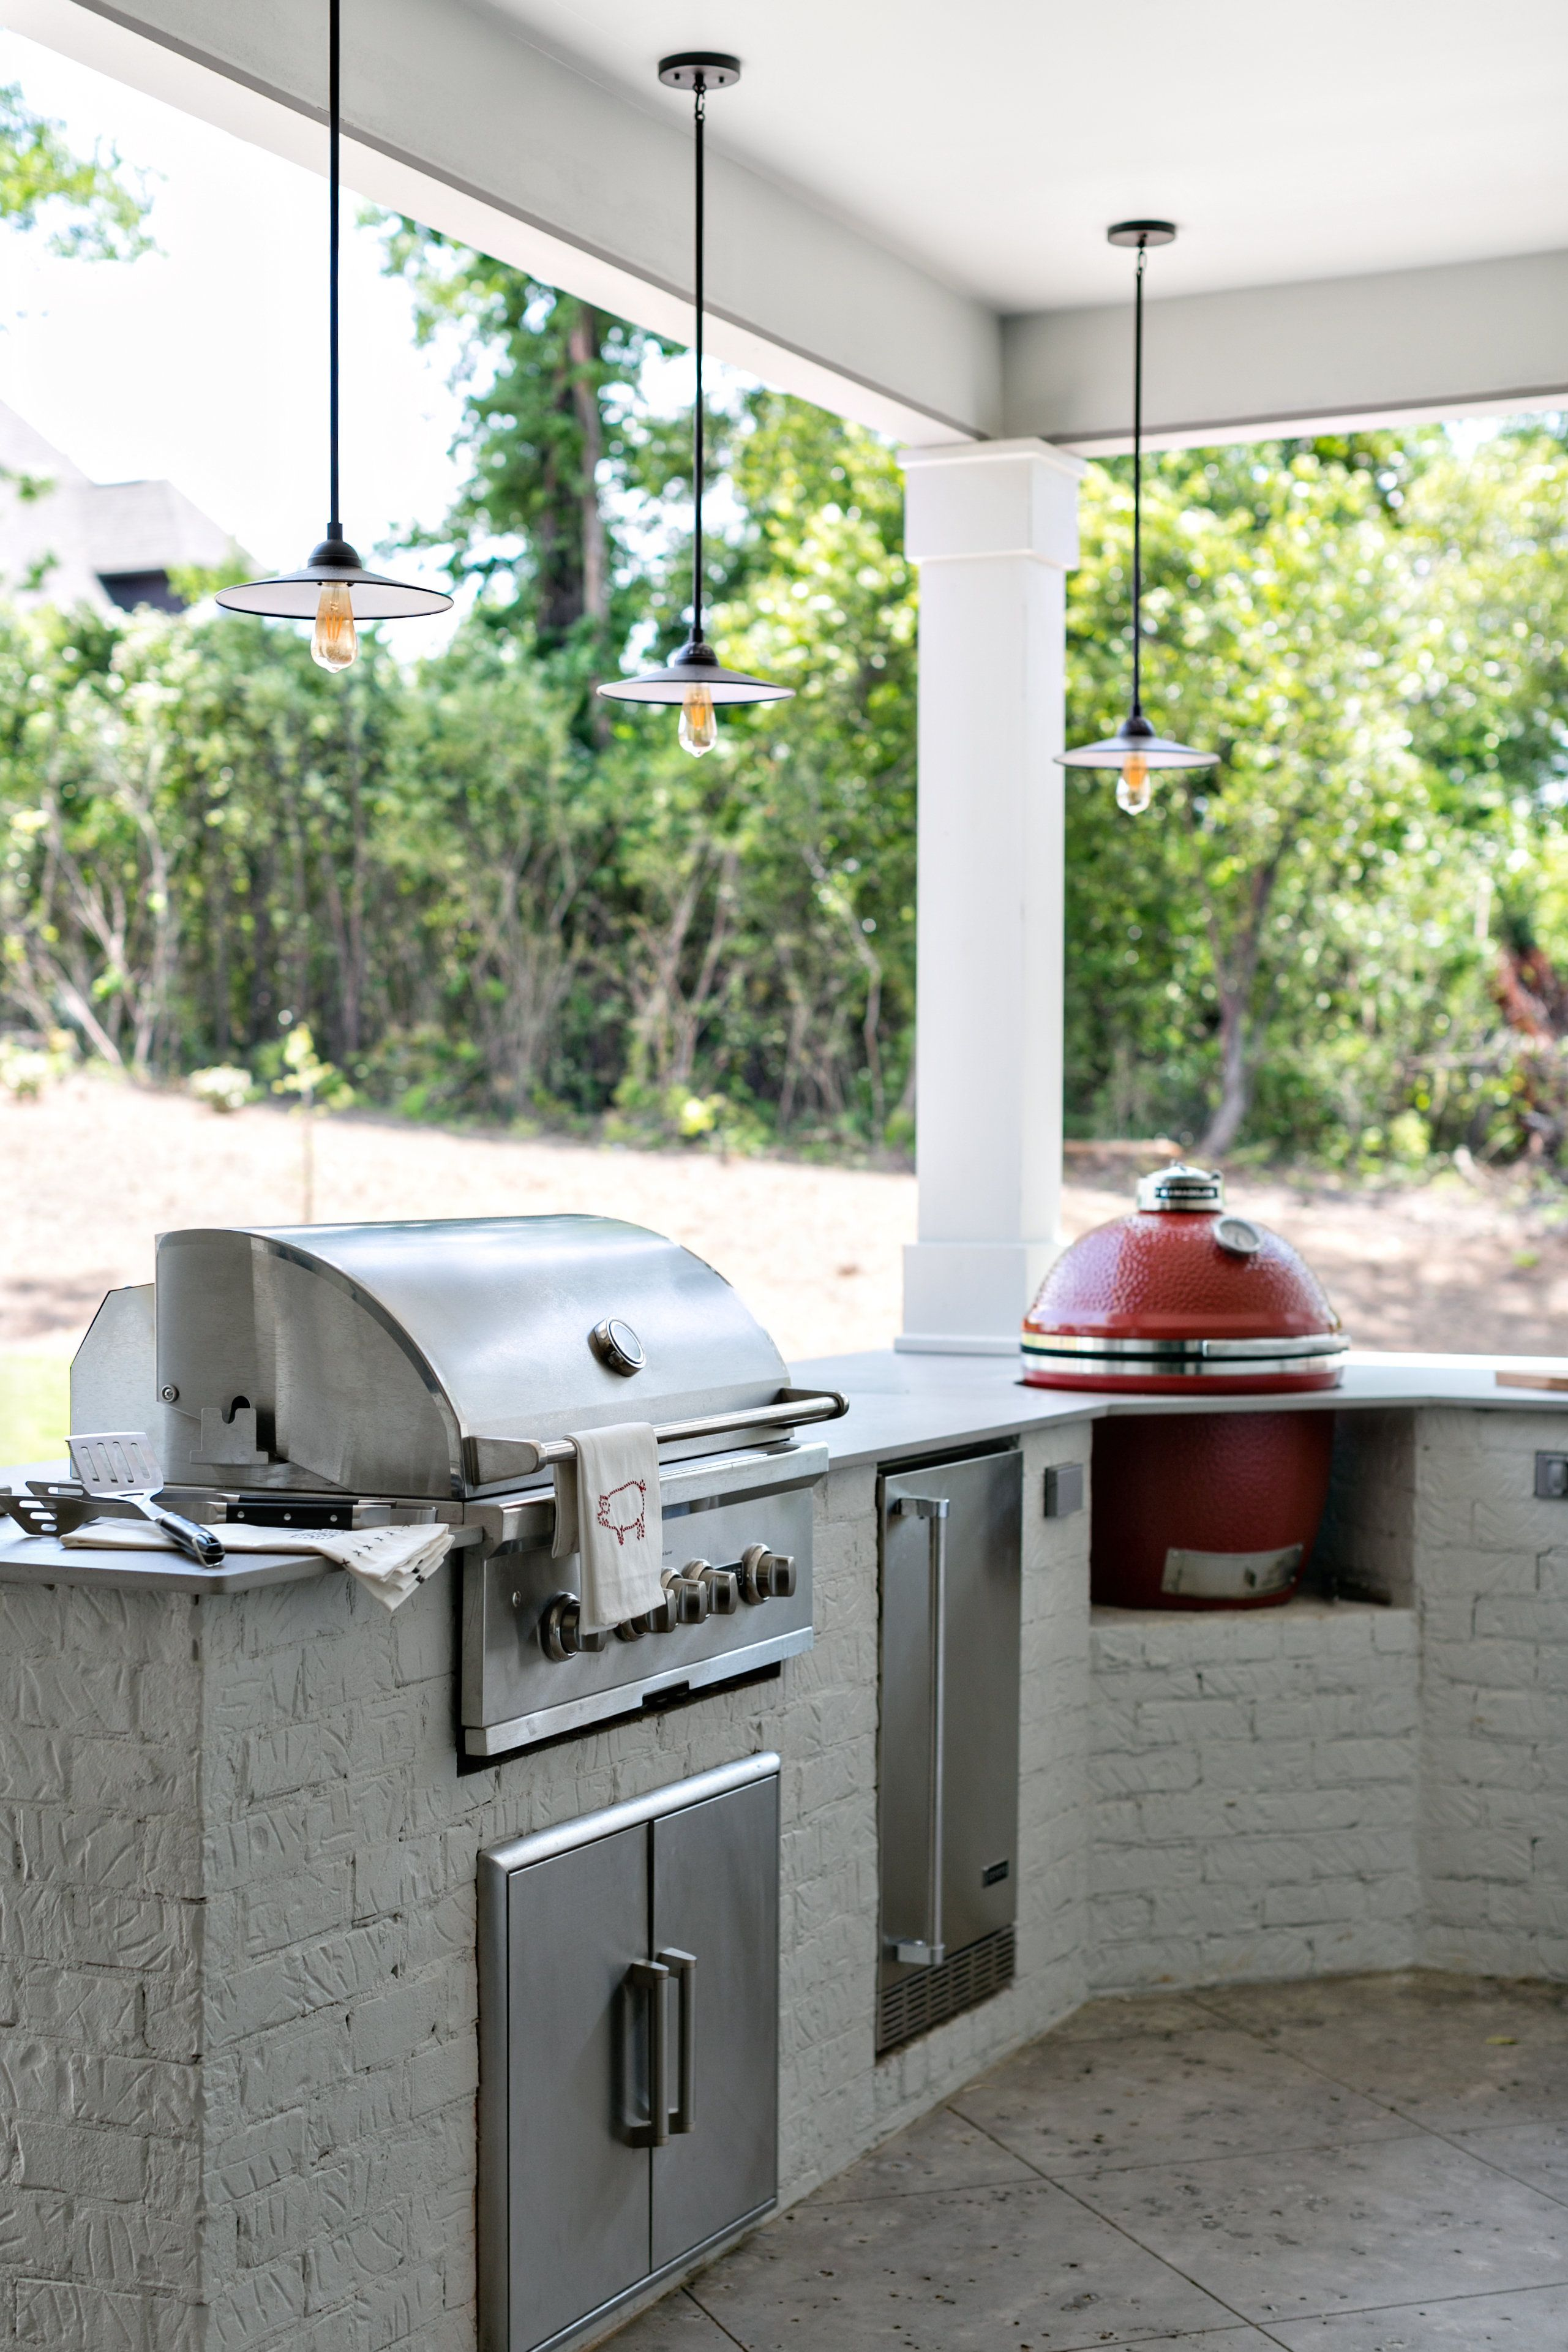 Southern Living Altadena Plan Covered Back Porch With Outdoor Kitchen Southernlivingplan Small Outdoor Kitchens Outdoor Kitchen Cabinets Build Outdoor Kitchen